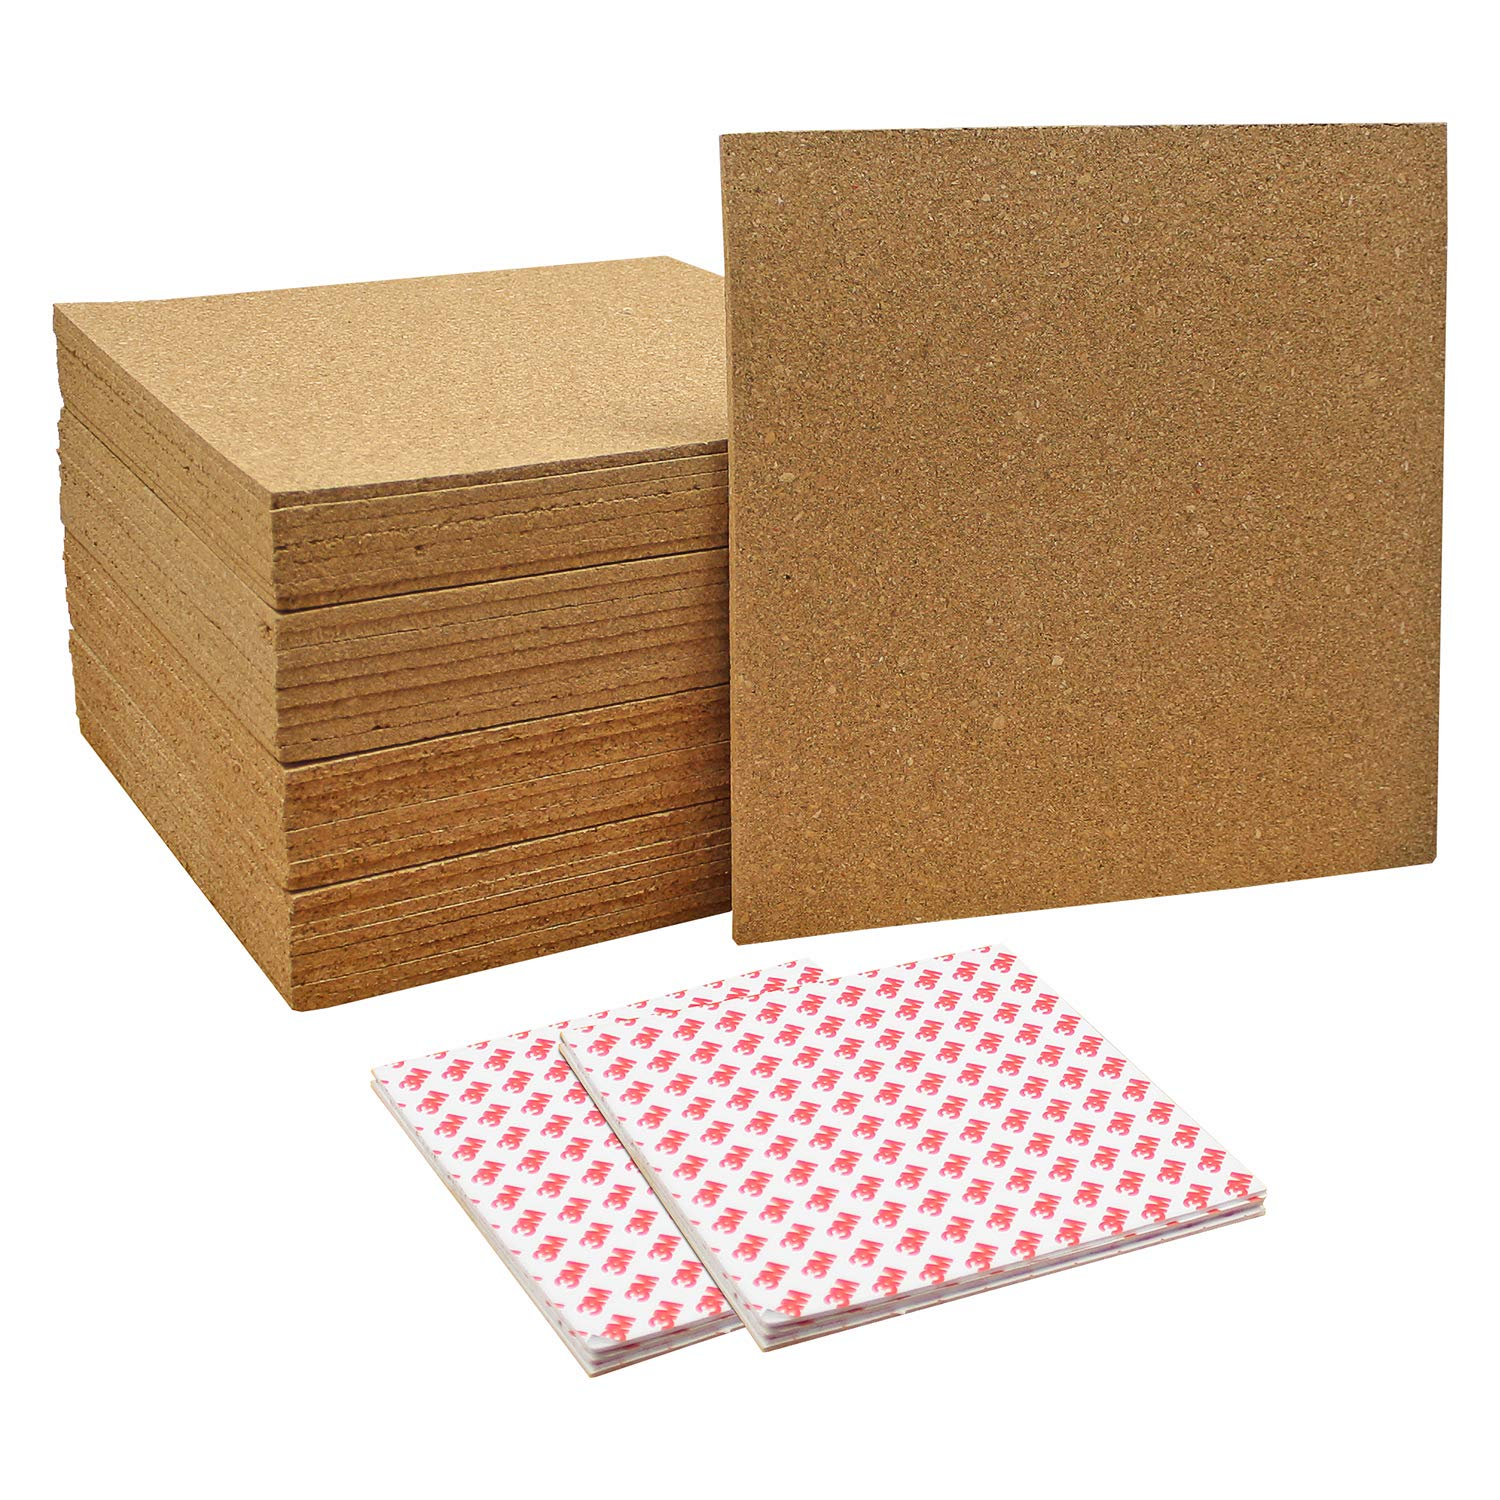 Thornton's Office Supplies Modular Frameless Cork Mini Wall Bulletin Board Tiles with 3M Adhesive, Natural, 12 inch x 12 inch, Frameless (8 Pack) TOS-CRKTL-12X12NATN